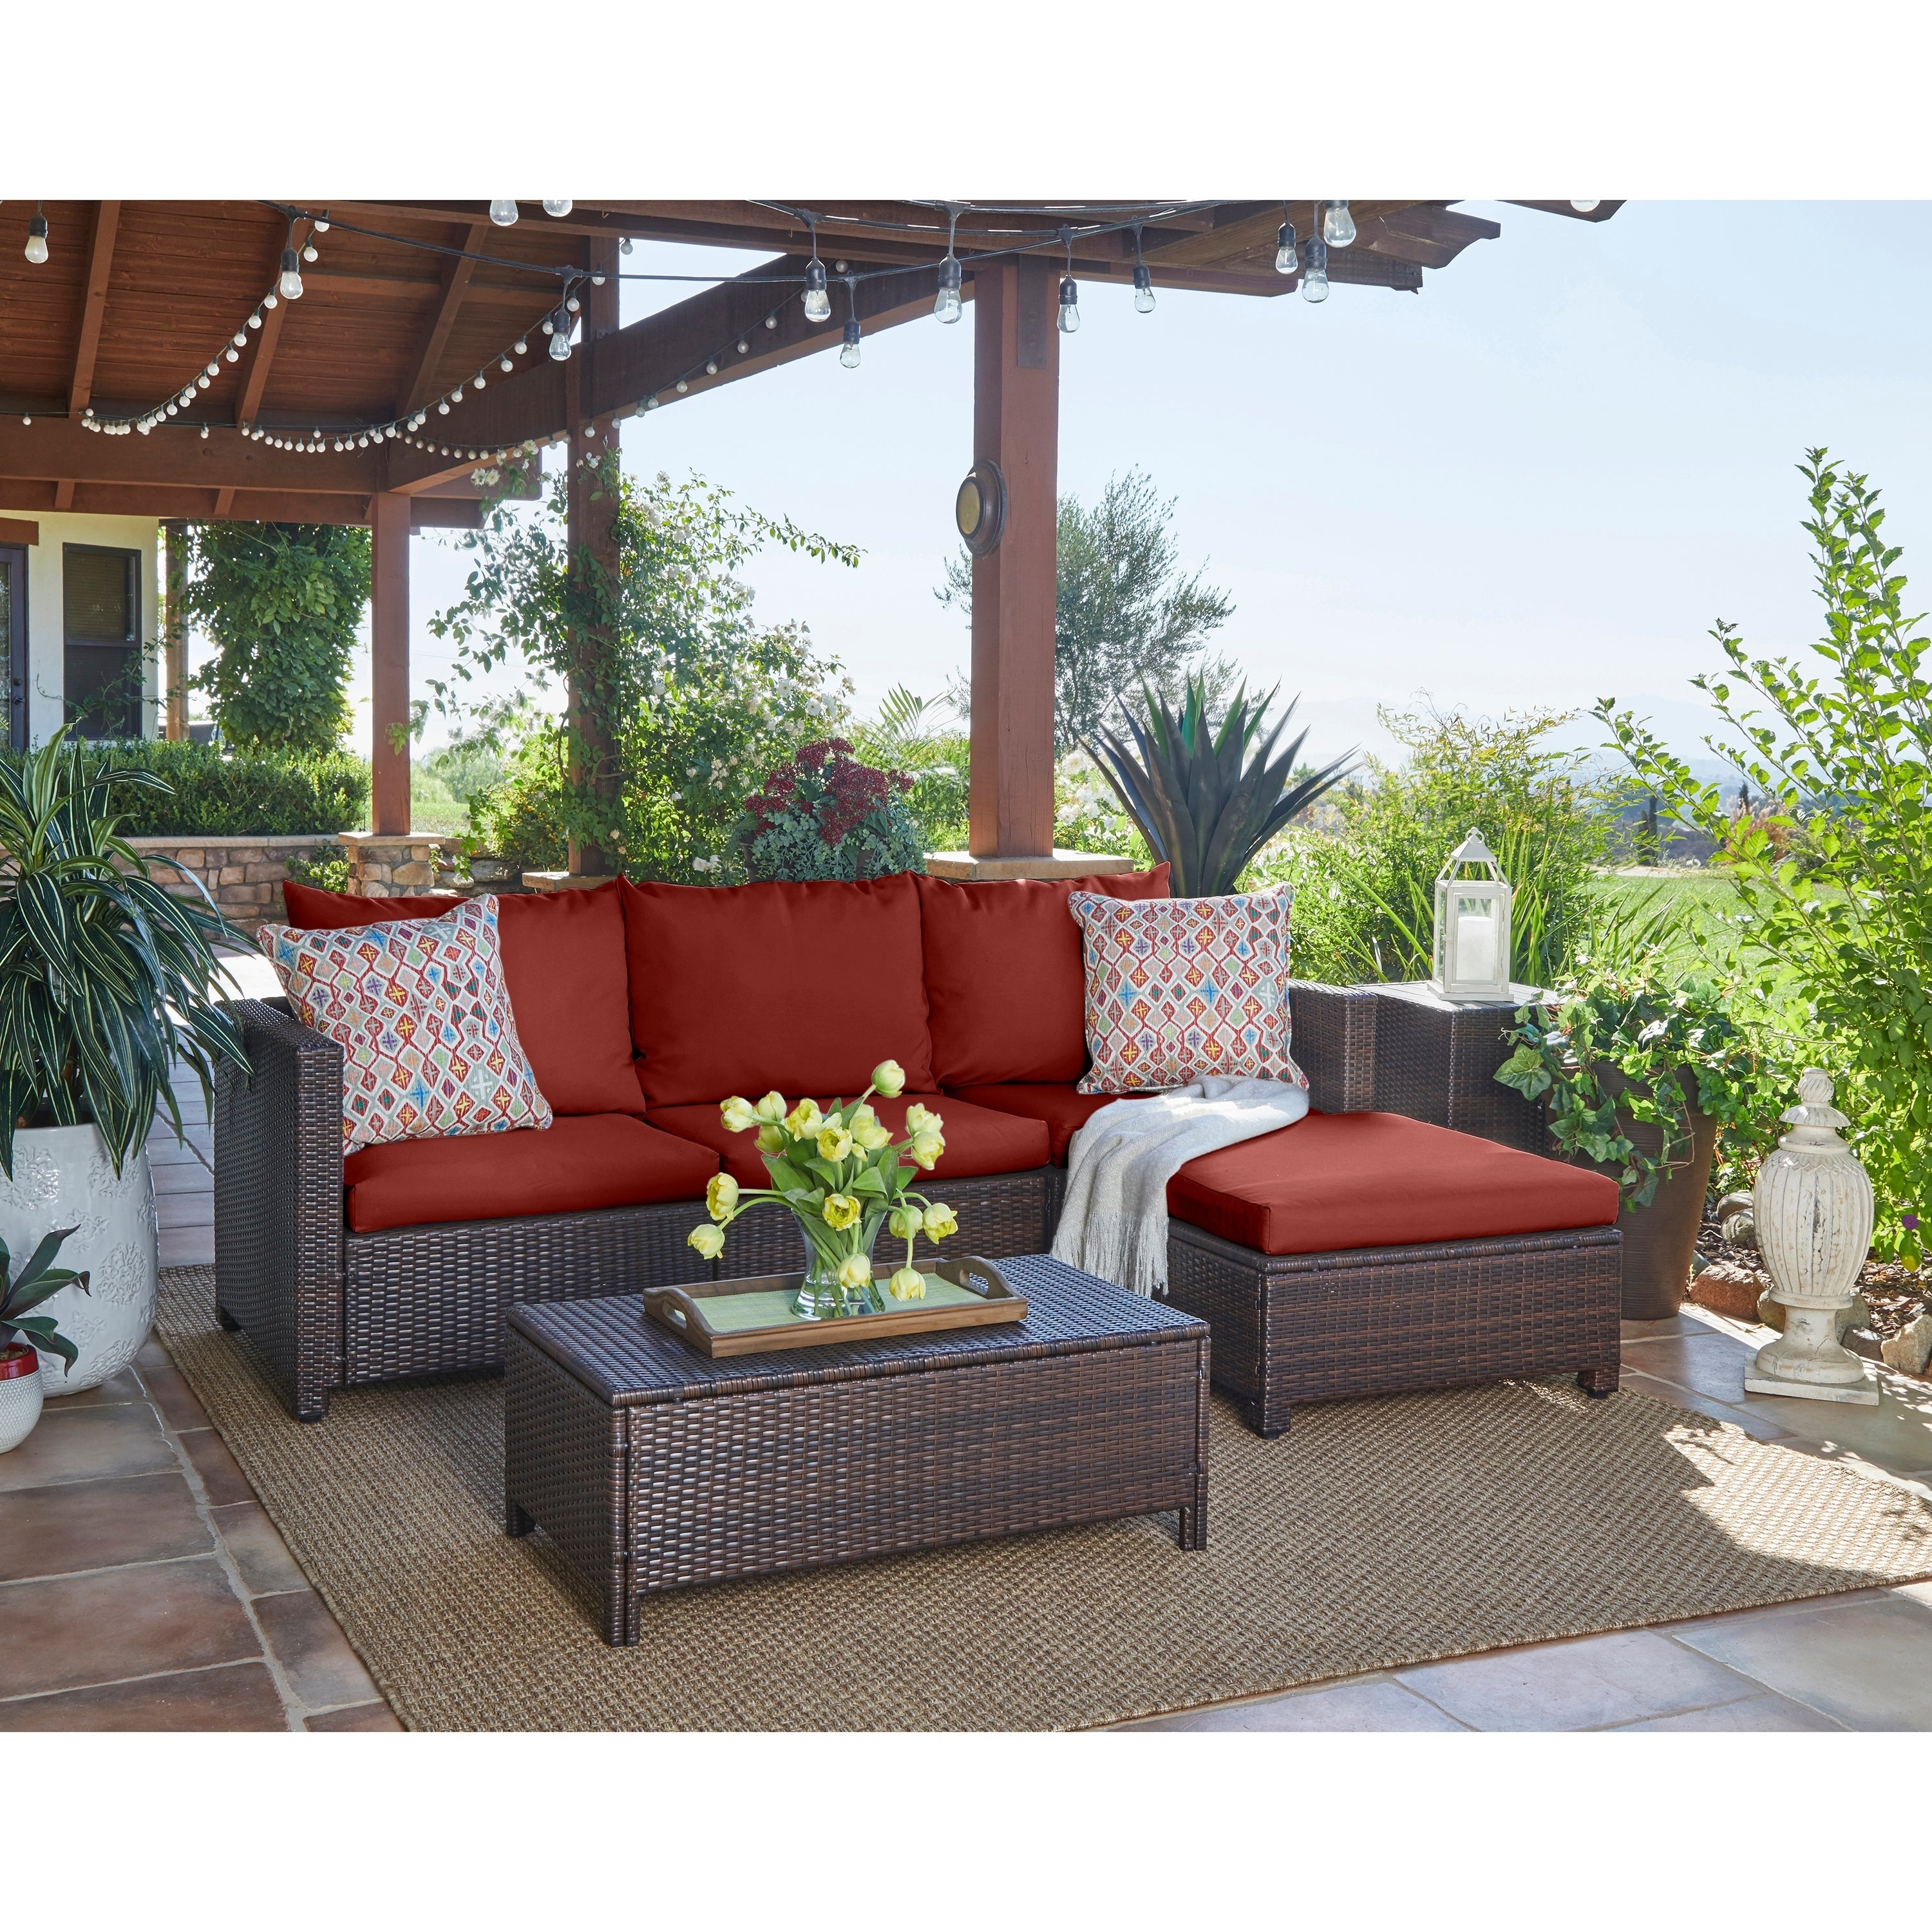 Most Current Havenside Home Stillwater Indoor/outdoor Brown Resin Rattan Sectional With Table And Terracotta Cushions Within Tess Corner Living Patio Sectionals With Cushions (View 17 of 20)